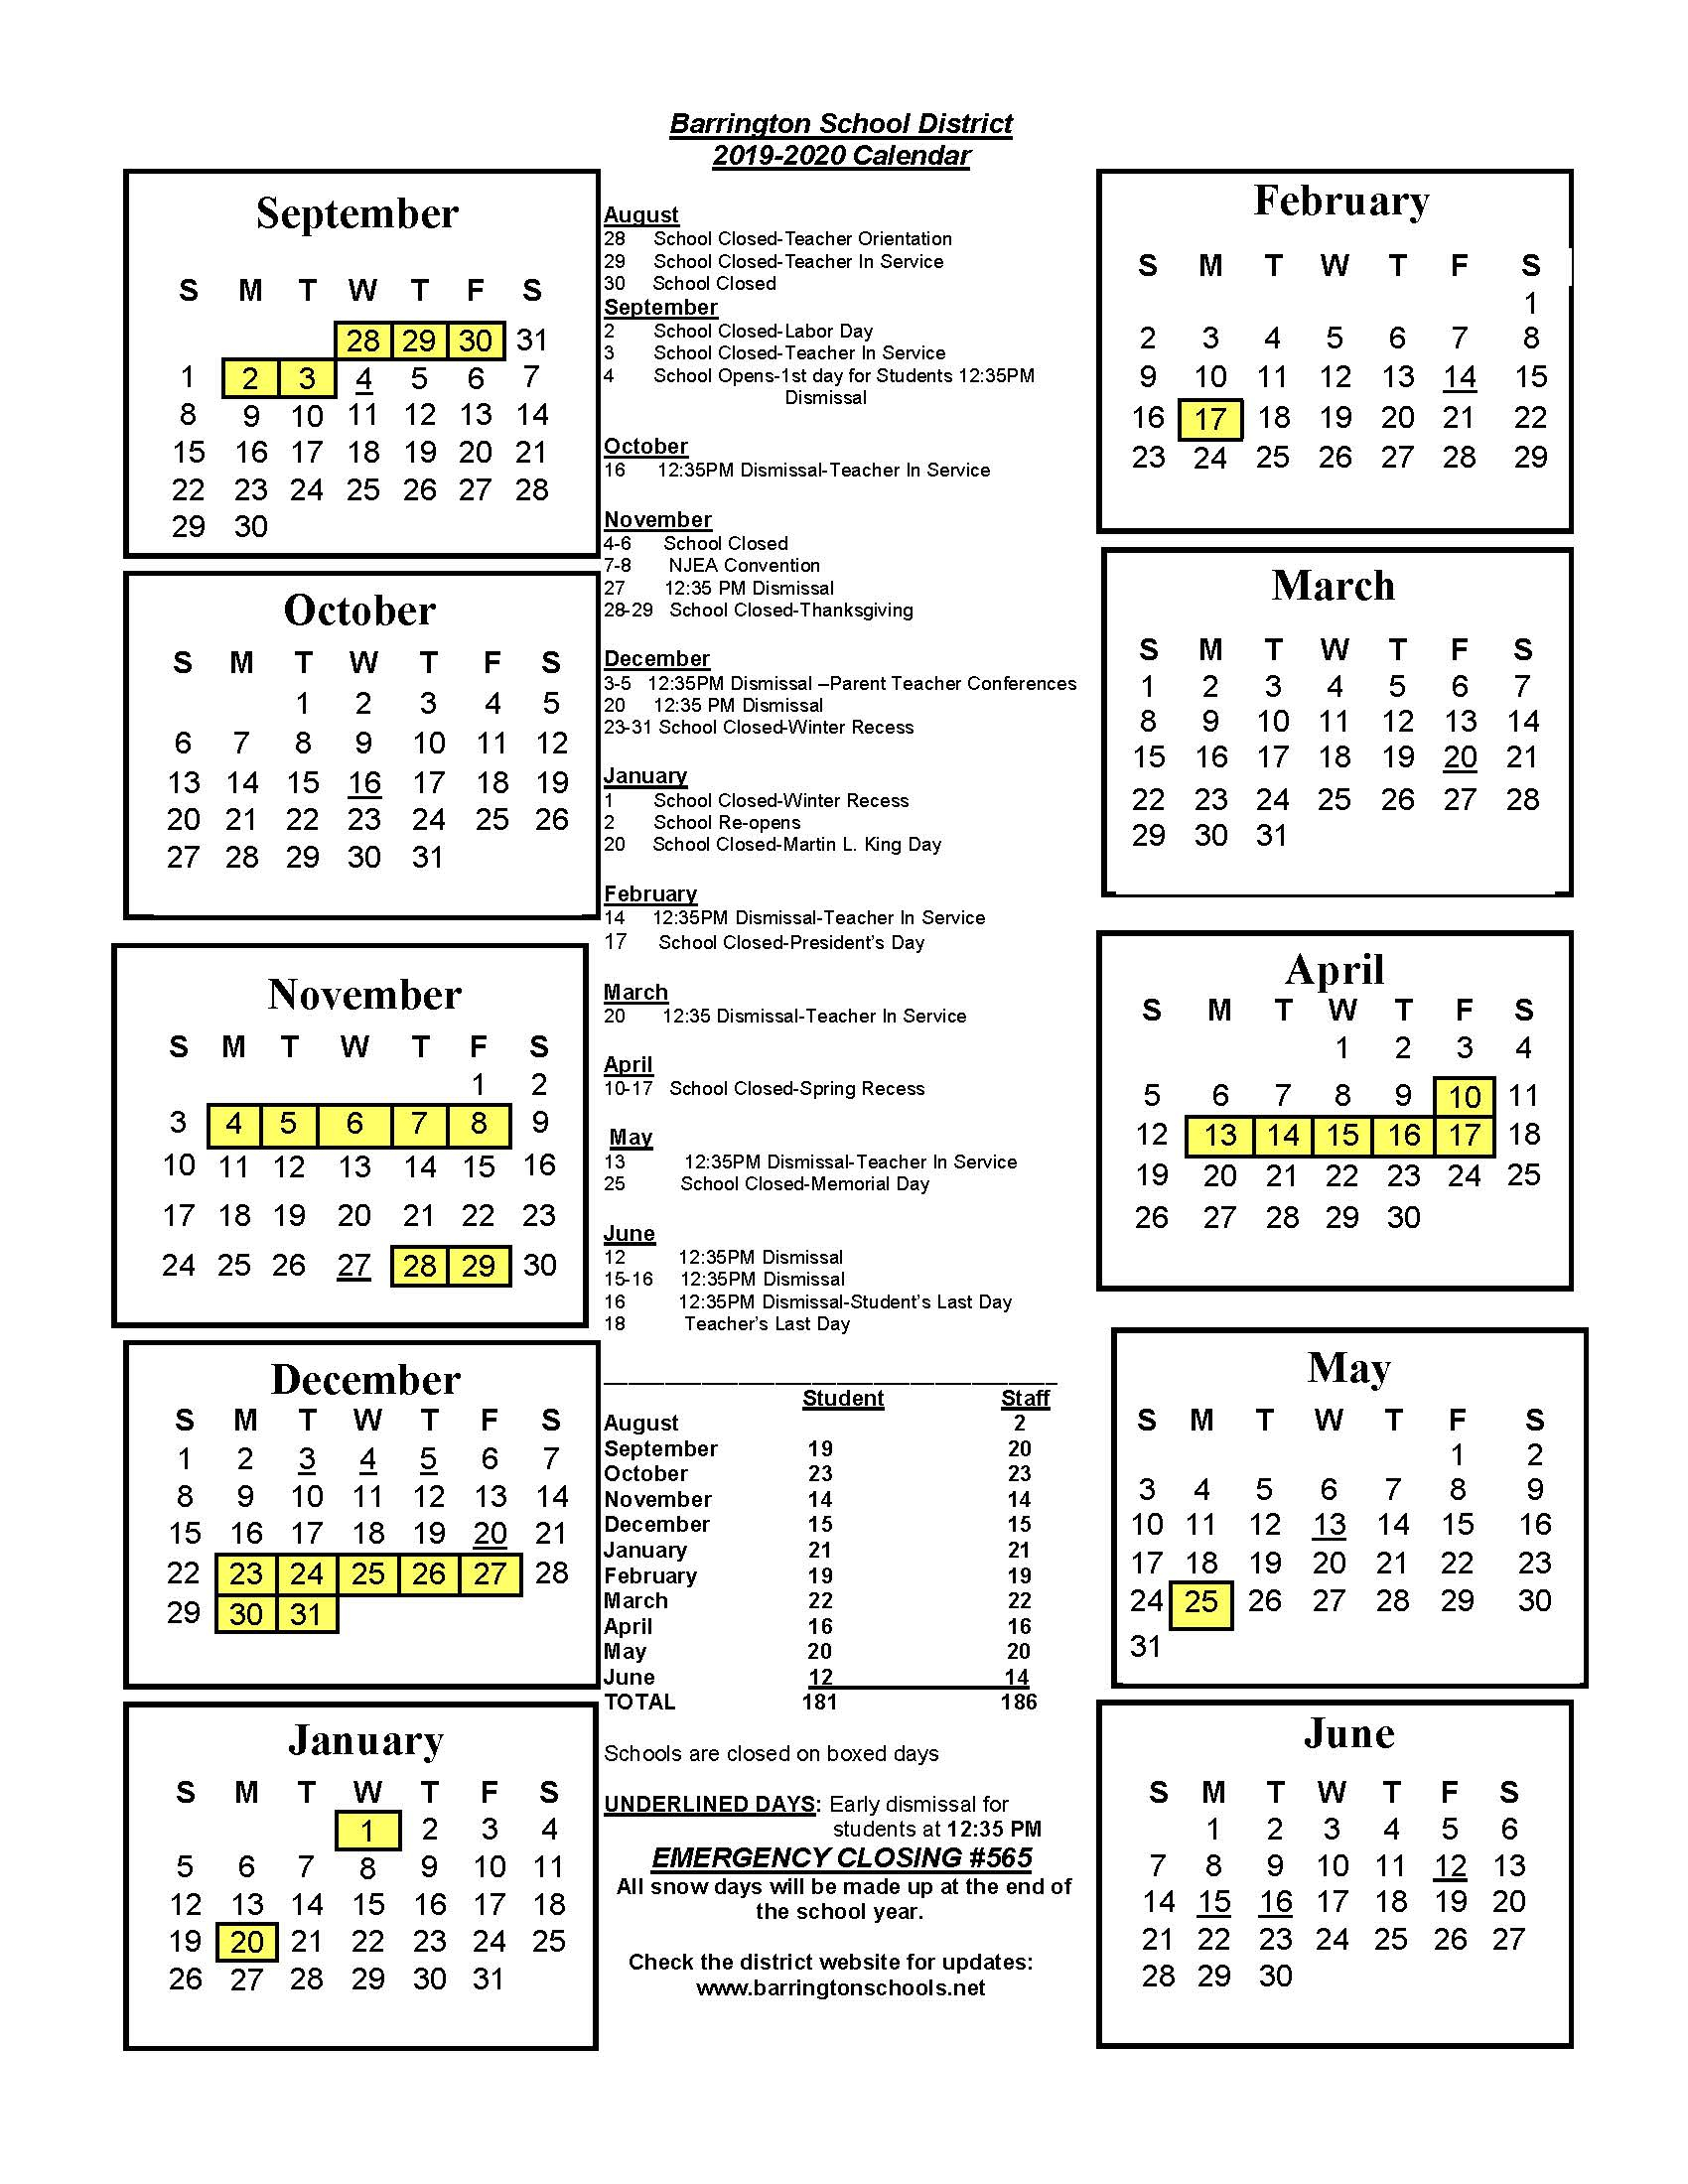 District Calendar - Barrington School District intended for Boyertown School Calendar